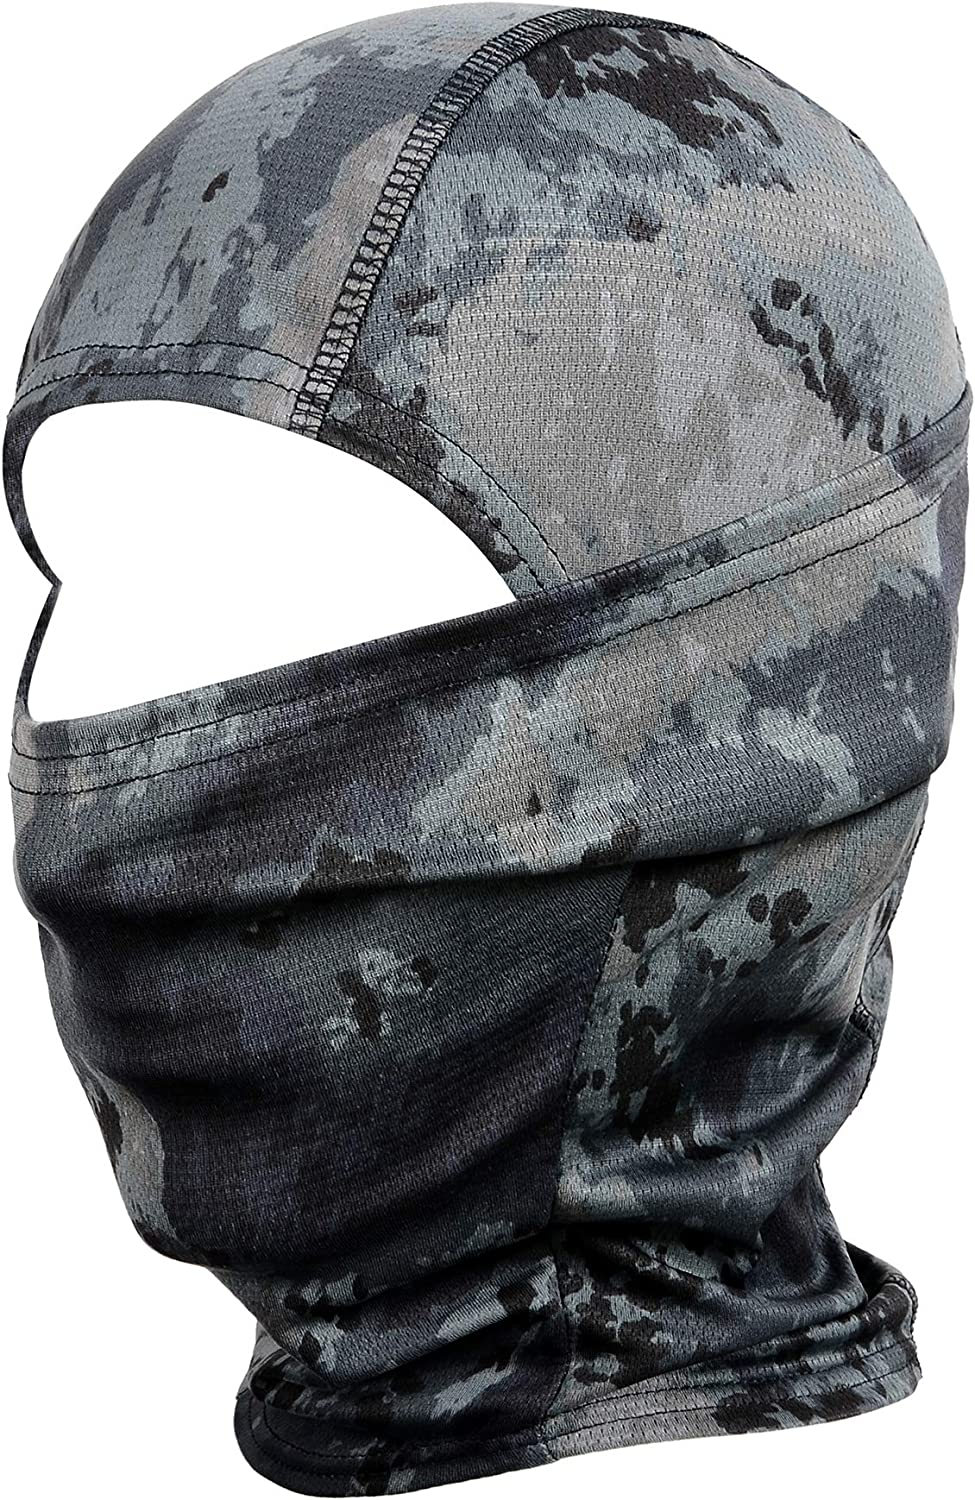 WTACTFUL Camouflage Balaclava Hood Ninja Outdoor Cycling Motorcycle Motorbike Hunting Military Tactical Airsoft Paintball Helmet Liner Gear Wind Dust Sun UV Protection Breathable Full Face Mask SB-01 : Clothing